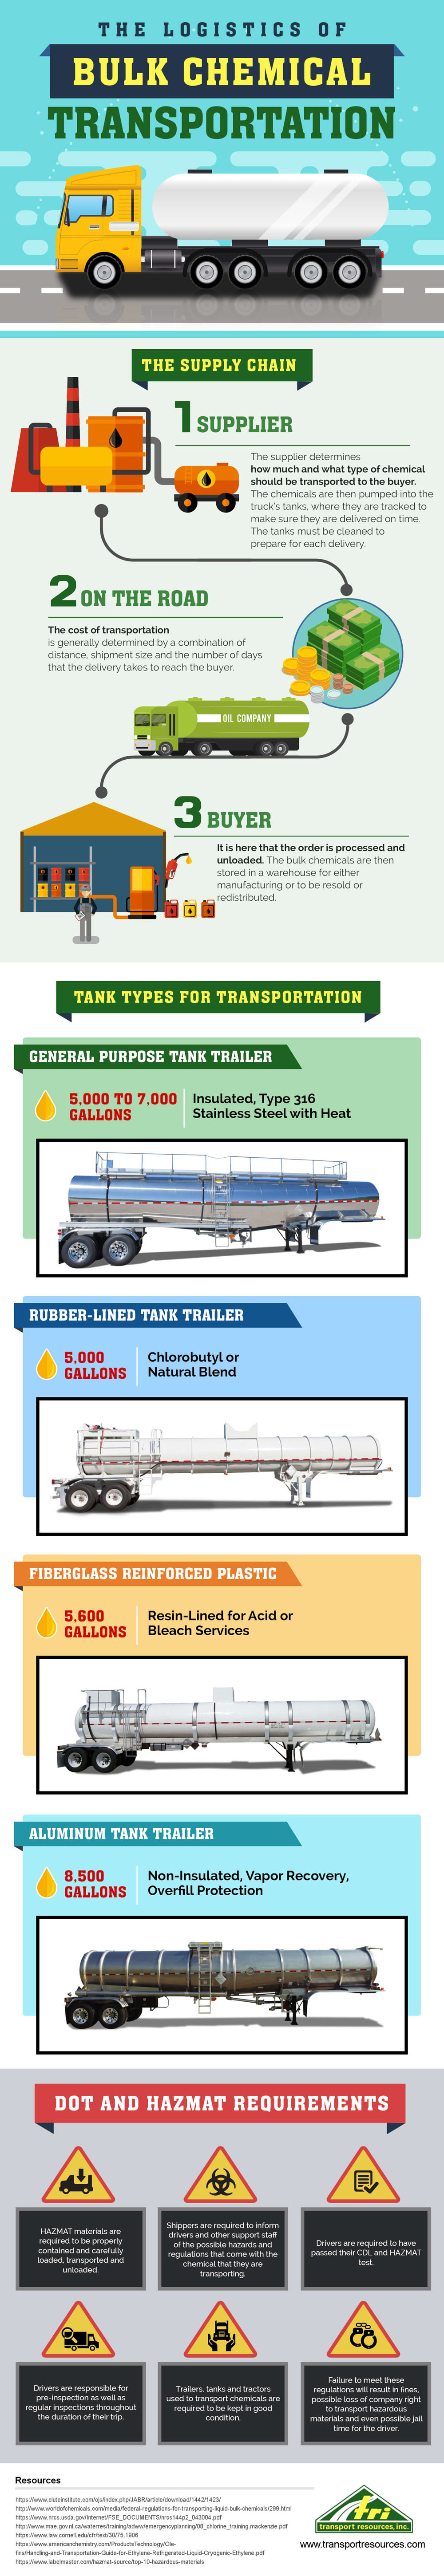 The Logistics of Bulk Chemical Transportation